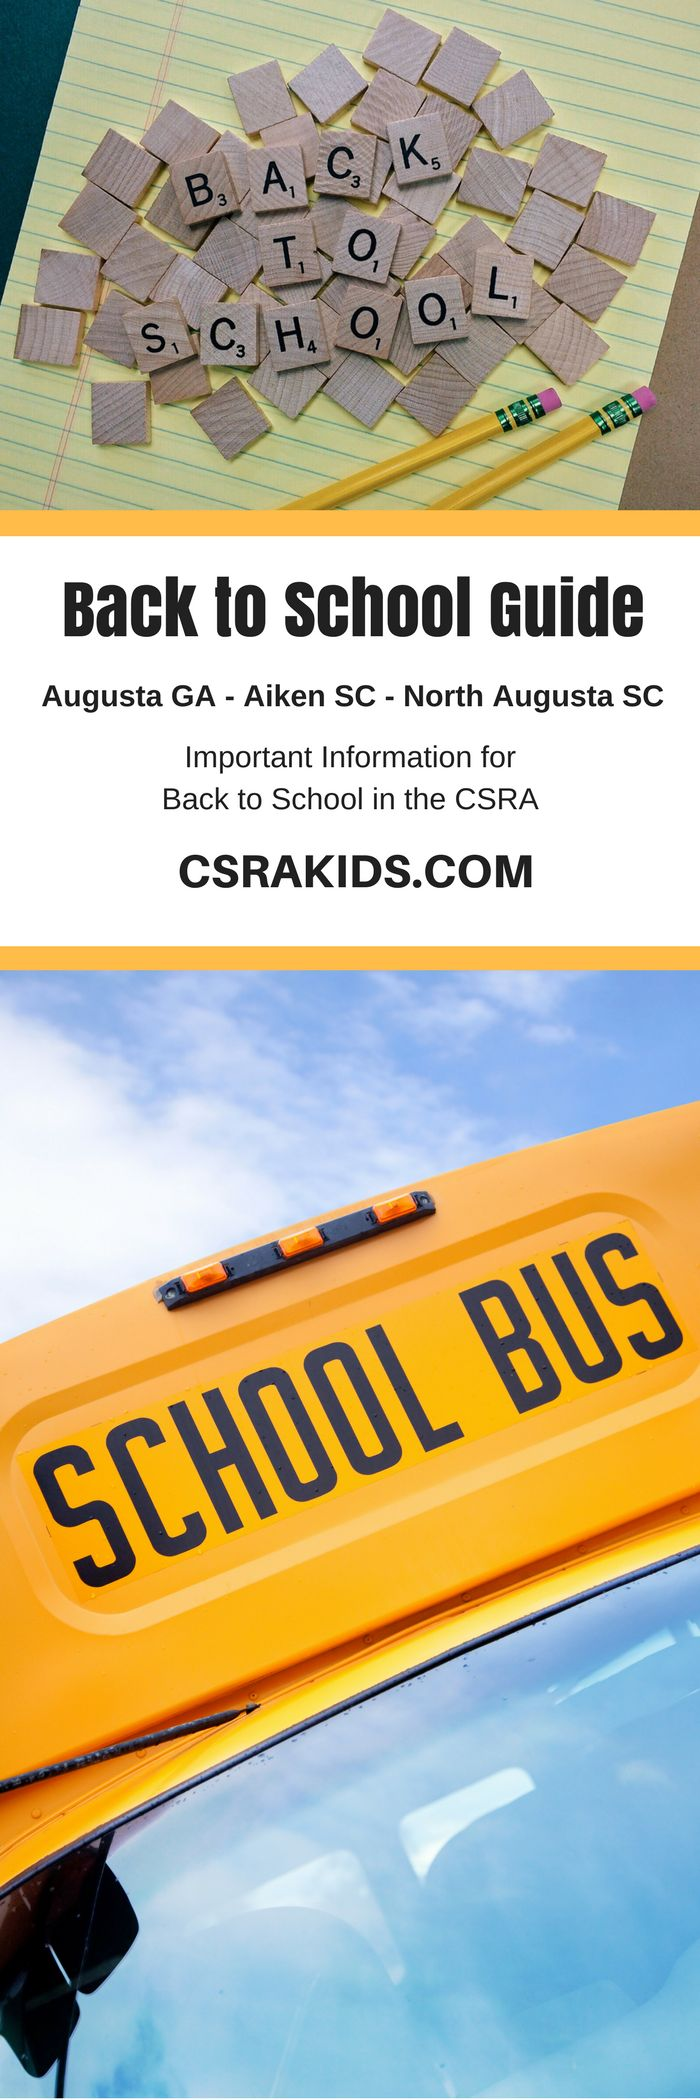 Back to School Guide: CSRA Kids  Registration Dates School Lunch Menus Back to School Events Homeschooling Information